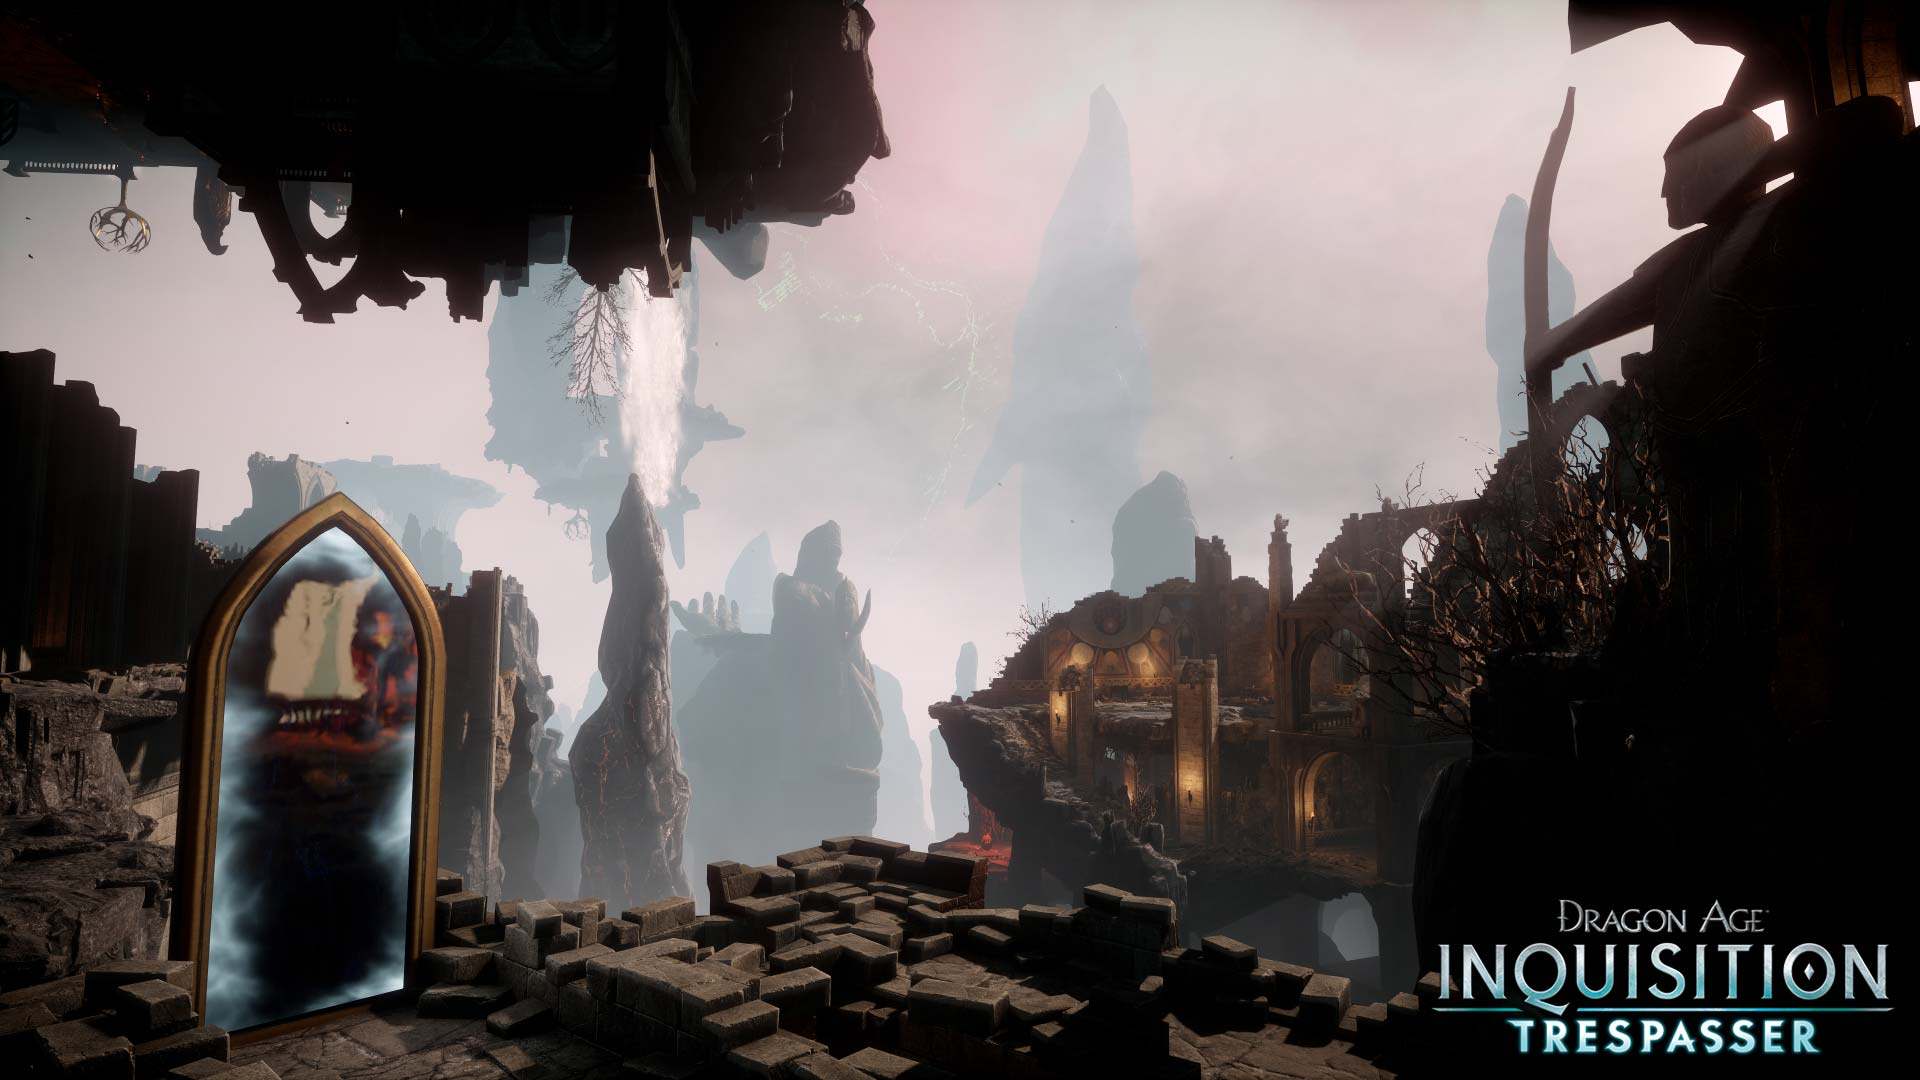 Dragon Age Inquisition Backgrounds Posted By Zoey Cunningham